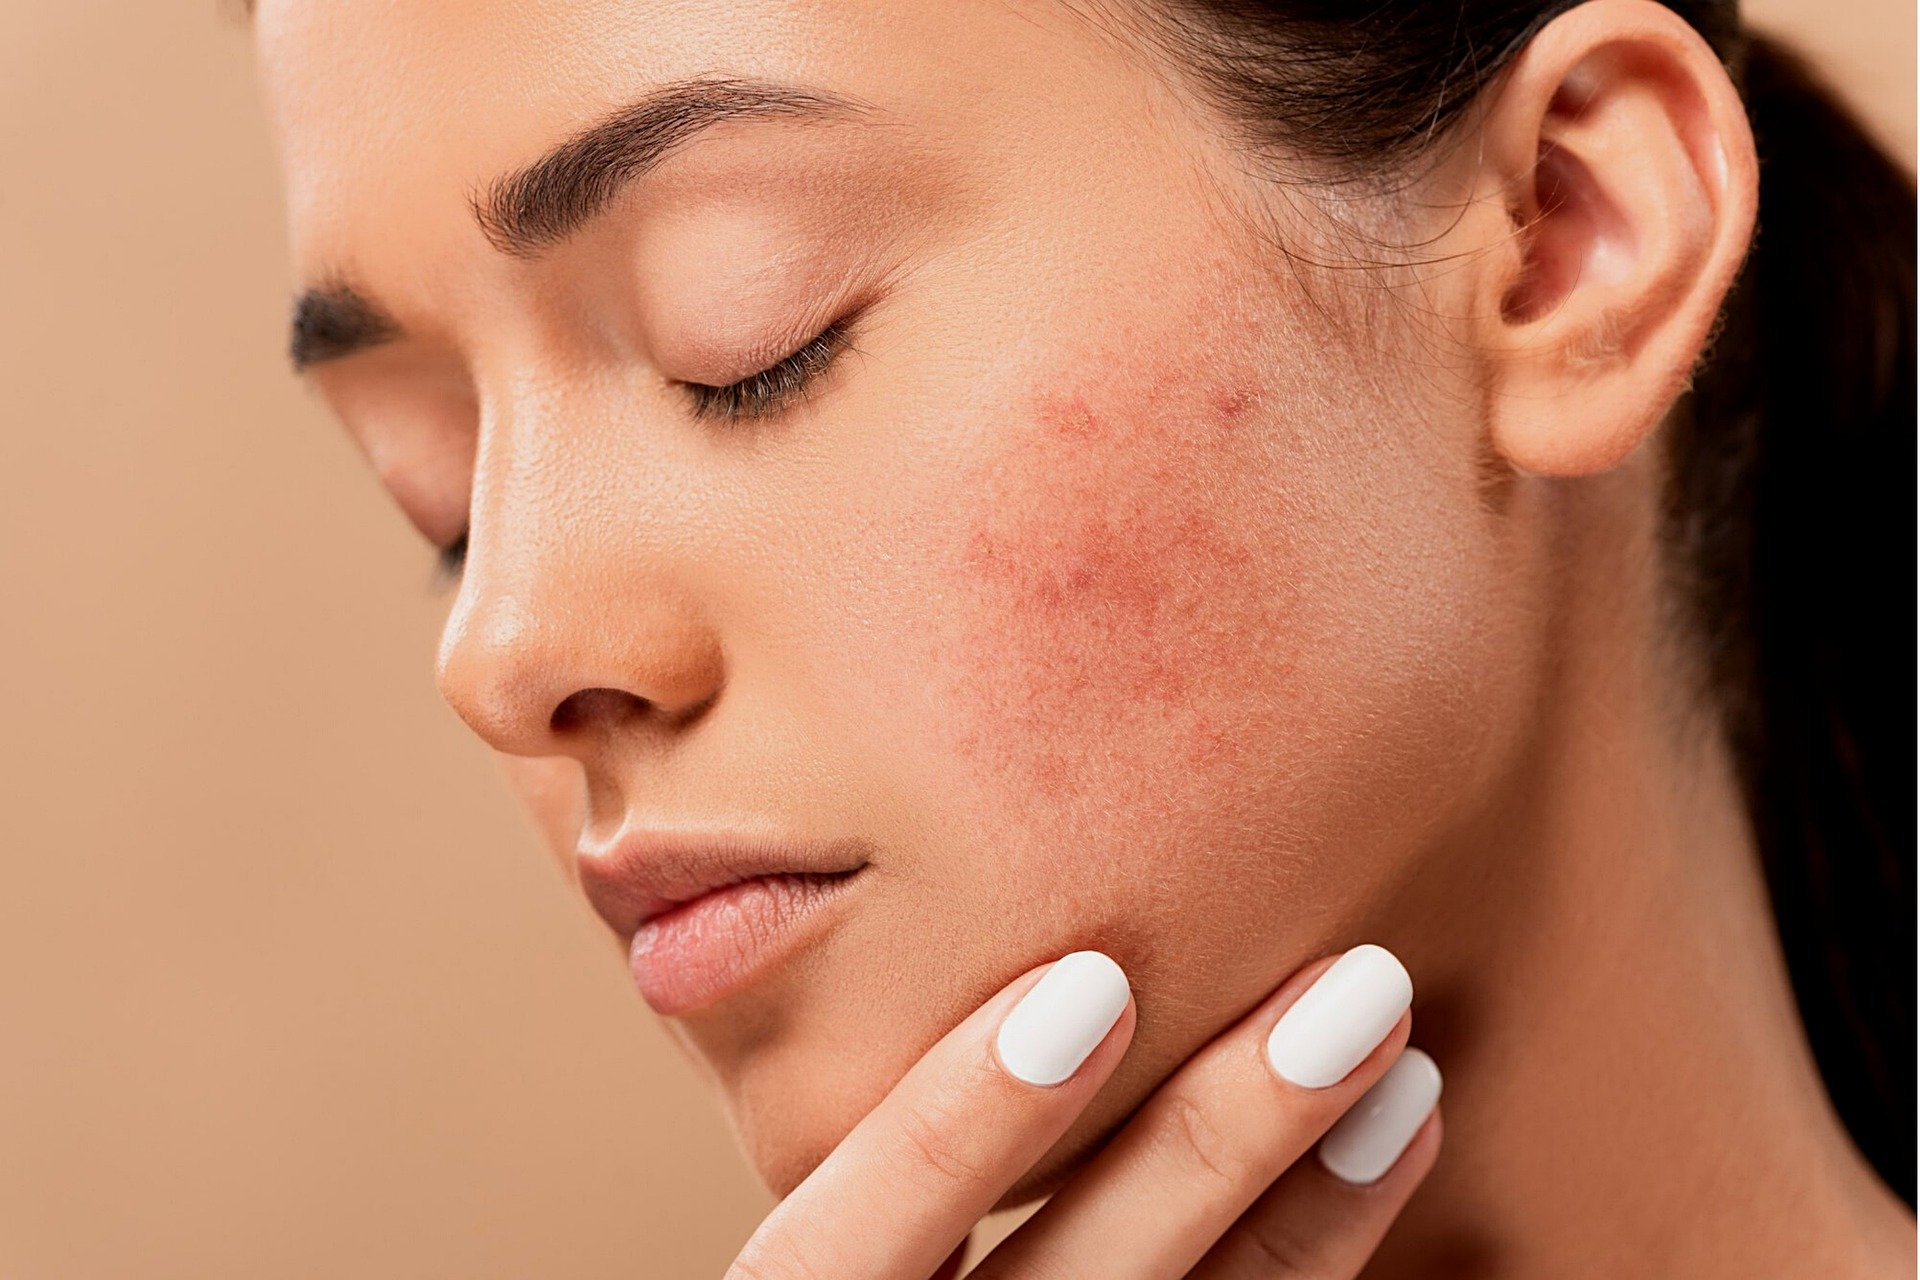 Is vegan good for your skin?